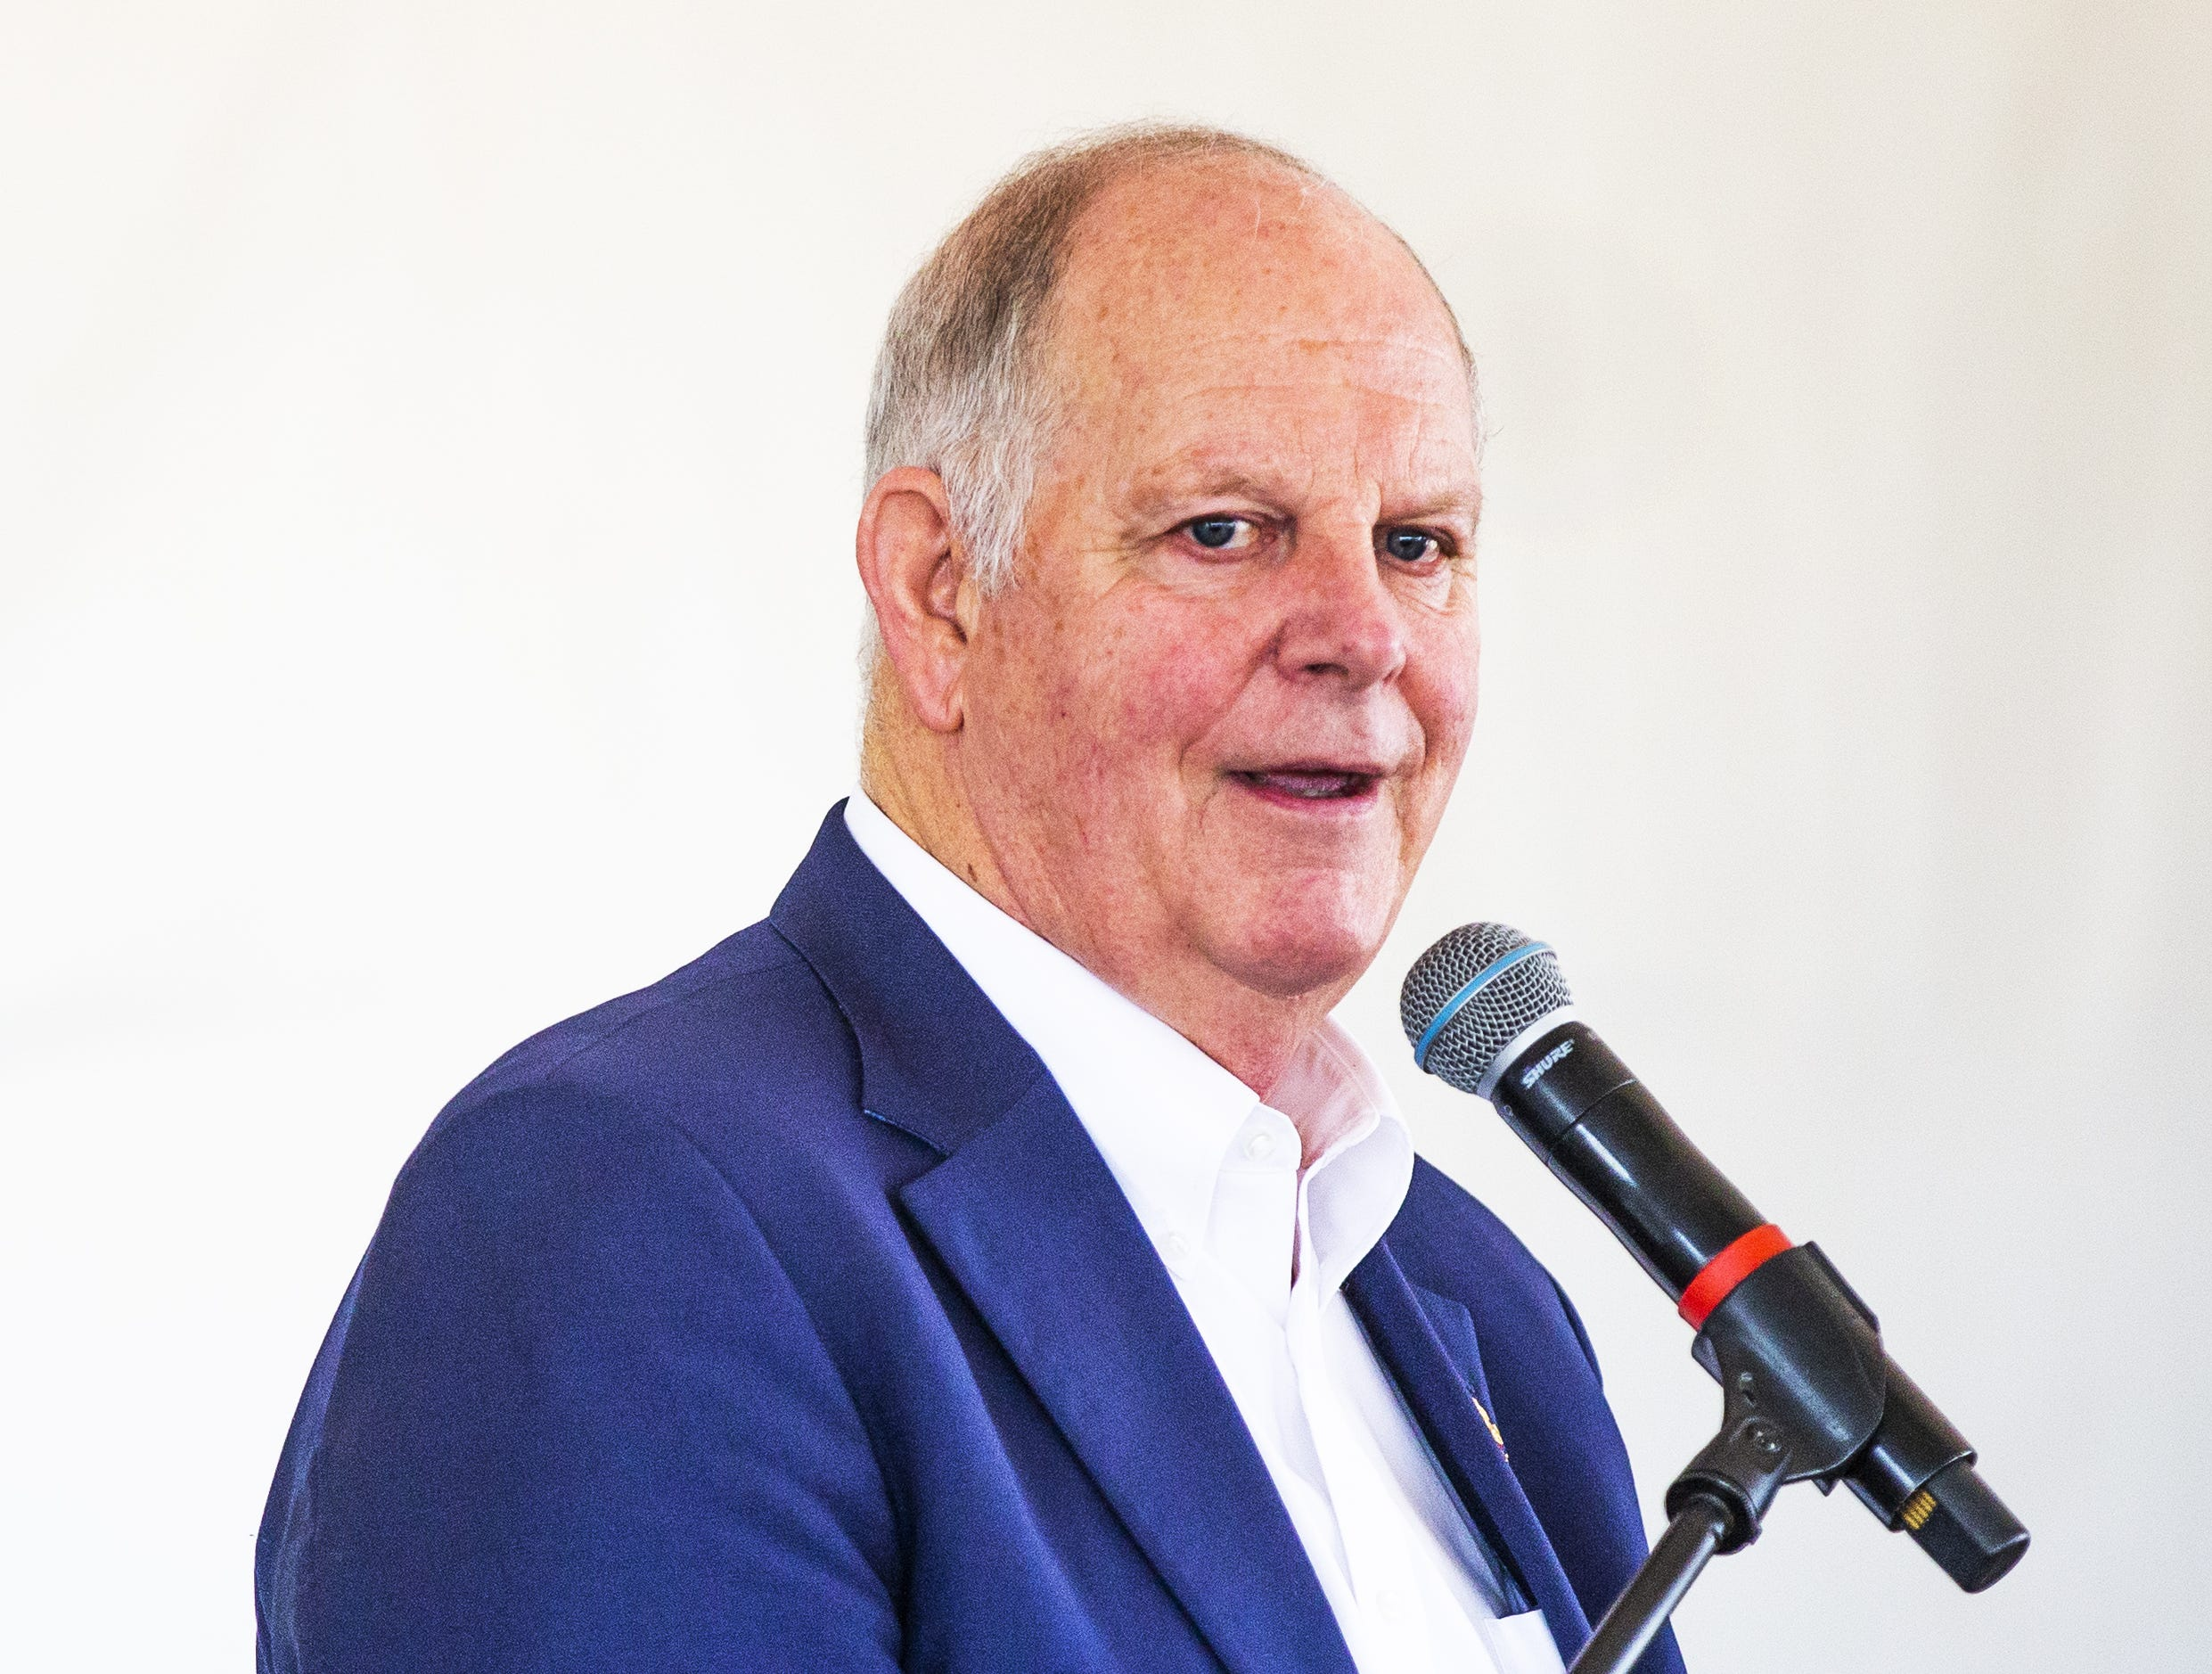 Rep. Tom O'Halleran makes comments to the crowd at the grand opening ceremony for the MAR 5 Interpretive Trail near Sacaton, Friday, March 1, 2019.